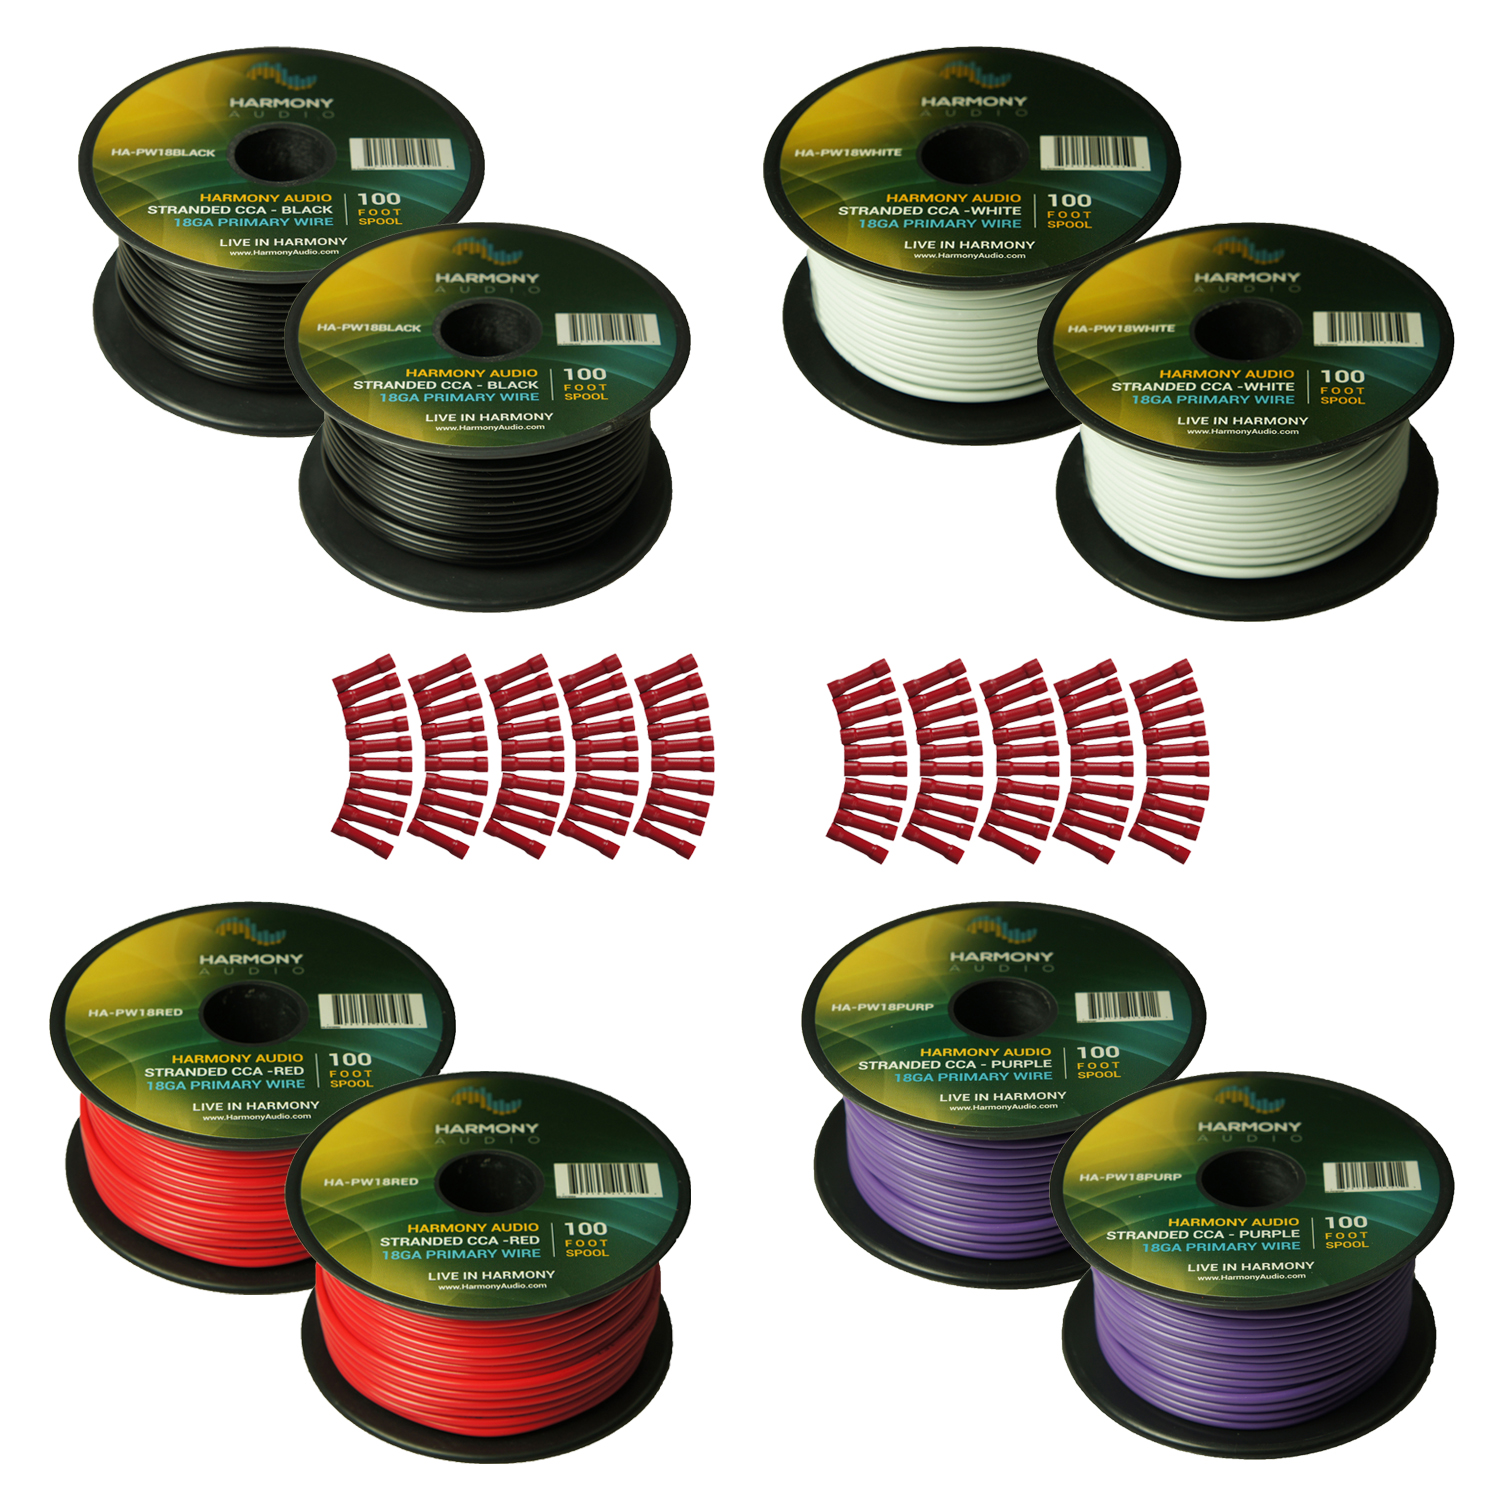 Harmony Audio Primary Single Conductor 18 Gauge Power or Ground Wire - 8 Rolls - 800 Feet - 4 Color Mix for Car Audio / Trailer / Model Train / Remote